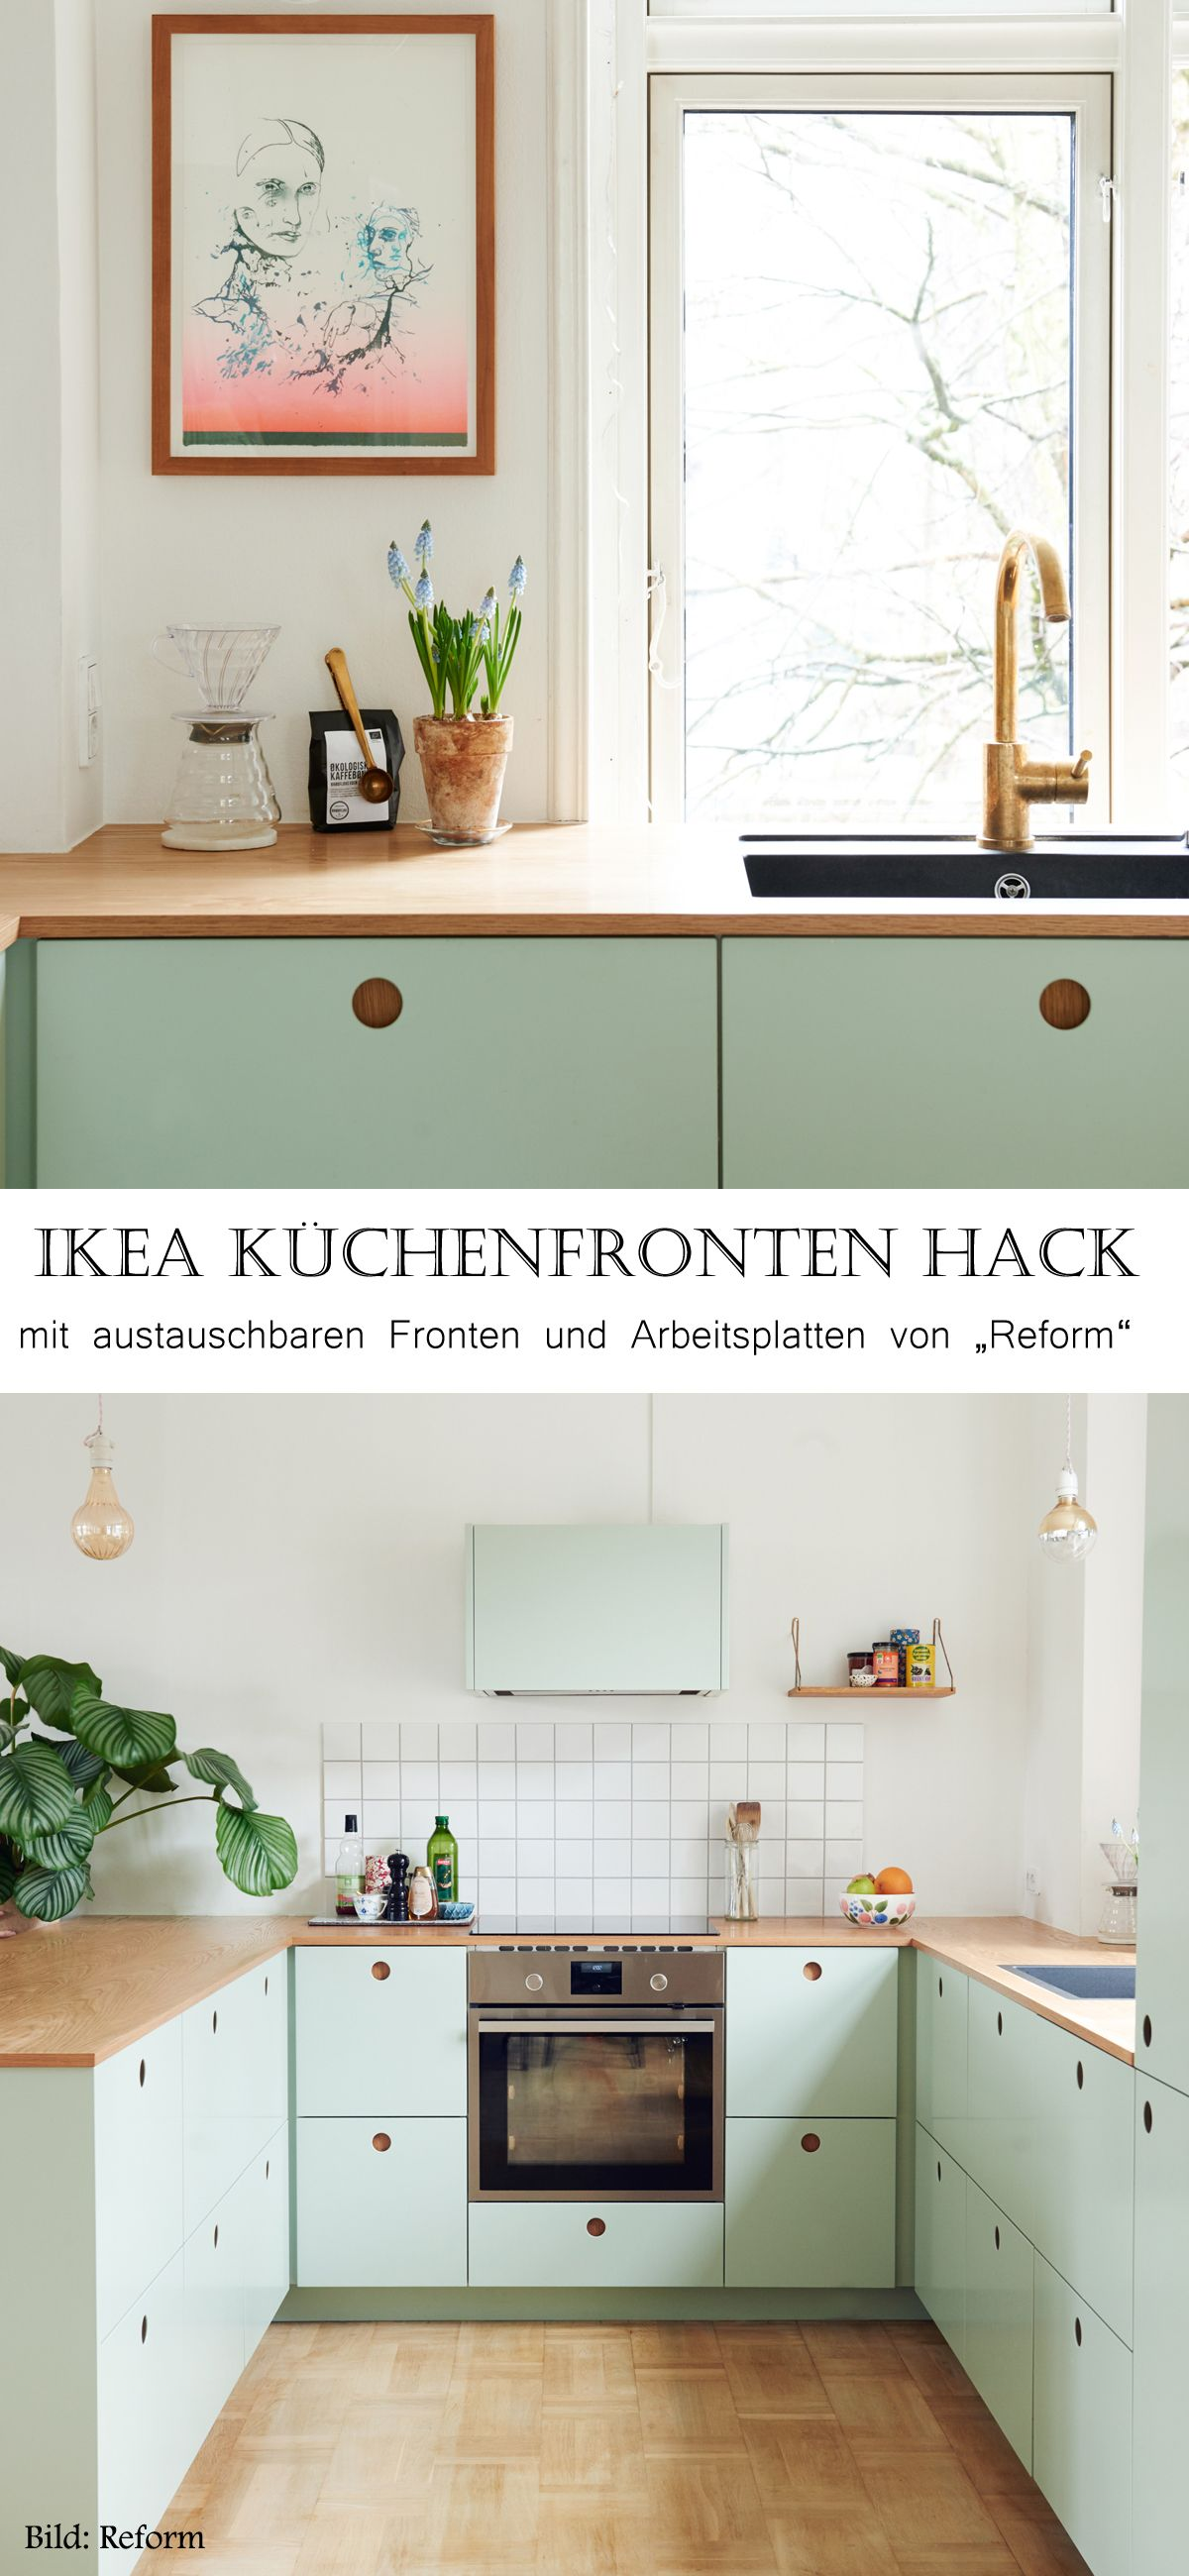 ikea k chenfronten pimpen fr hlingsstimmung zieht ein. Black Bedroom Furniture Sets. Home Design Ideas